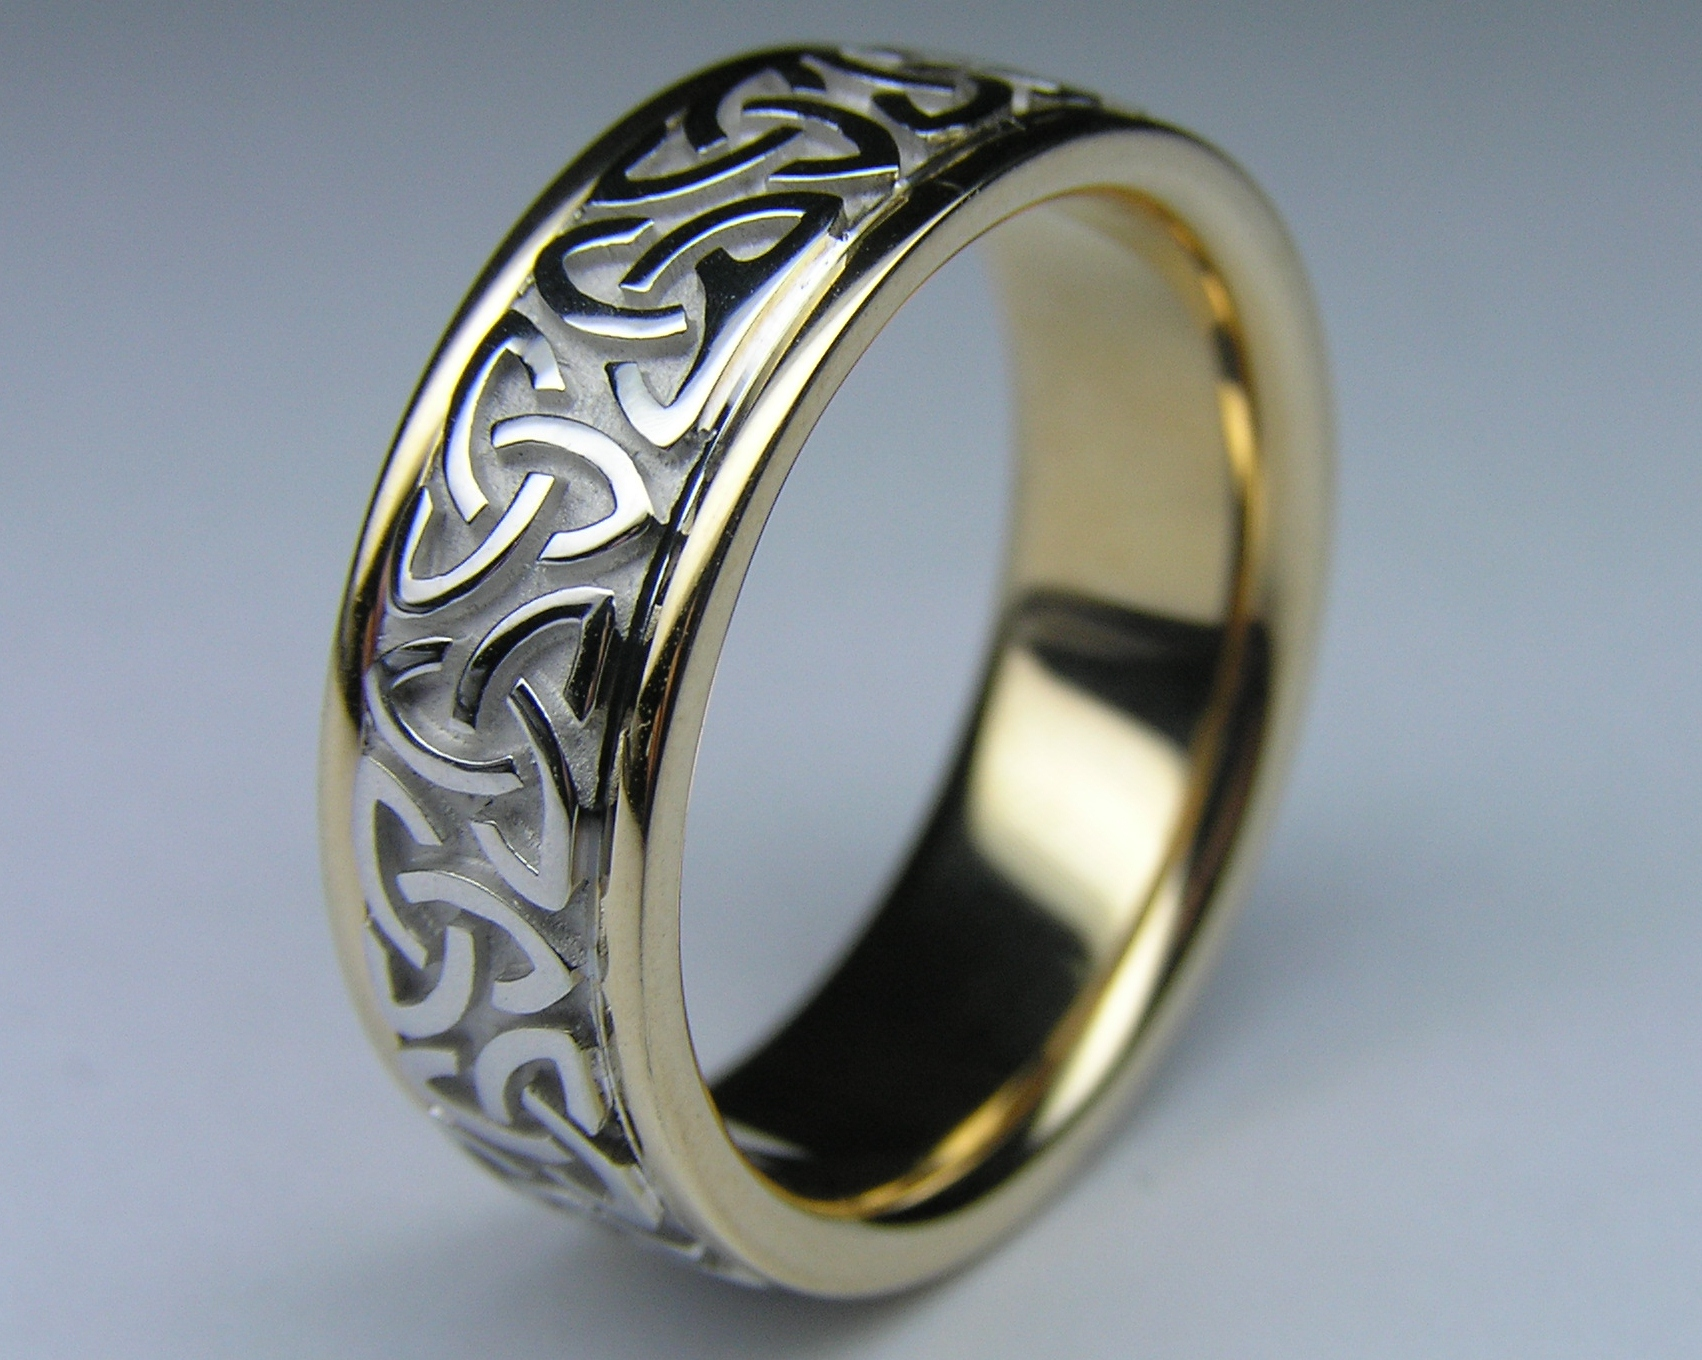 band tq knot for by men products benchmark celtic rings wedding cobalt dundee